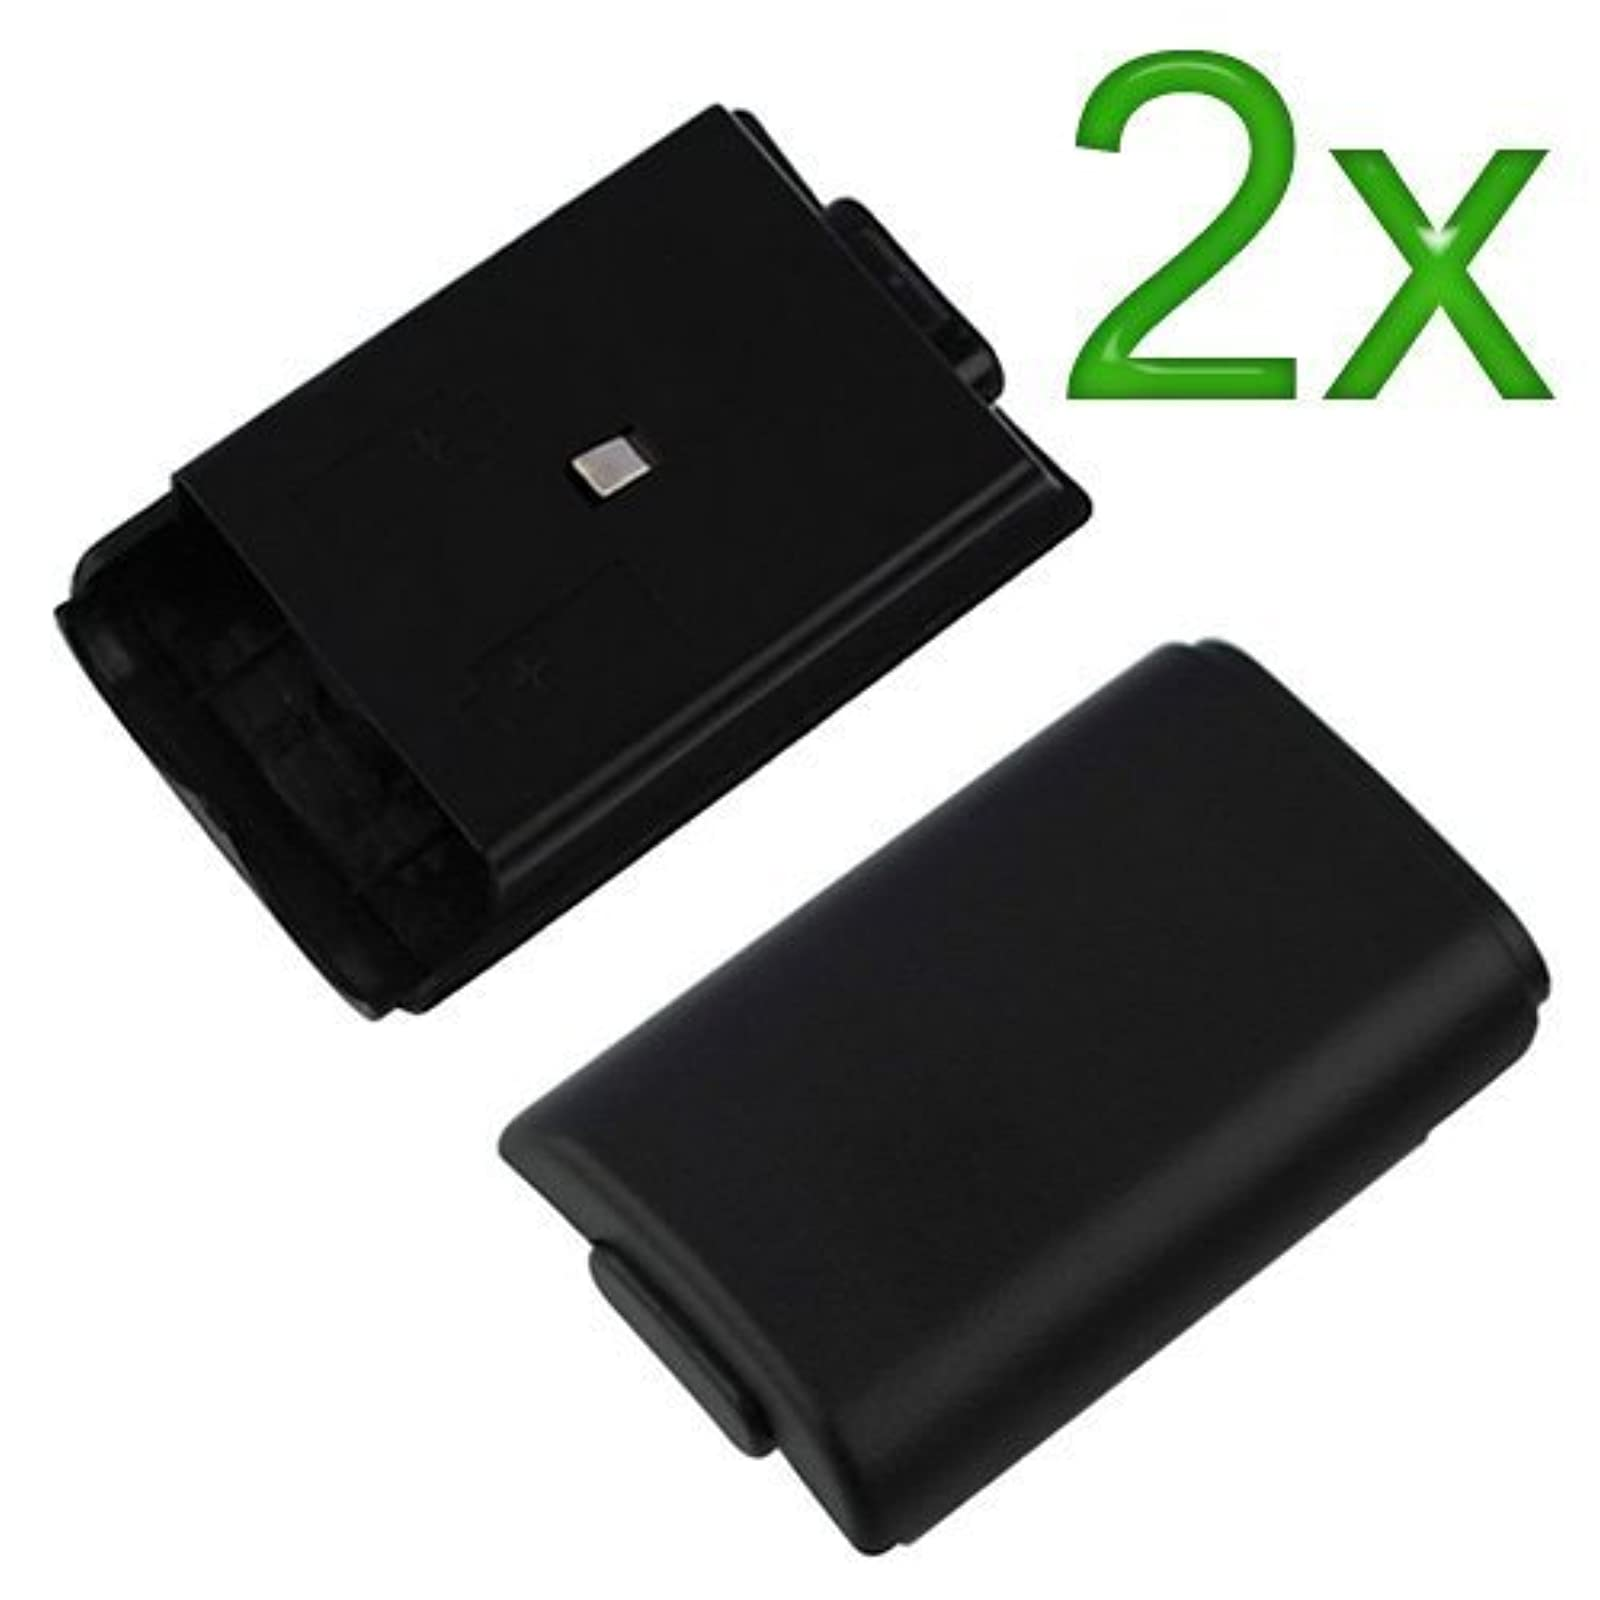 2X Black Battery Cover For Microsoft For Xbox 360 Protective